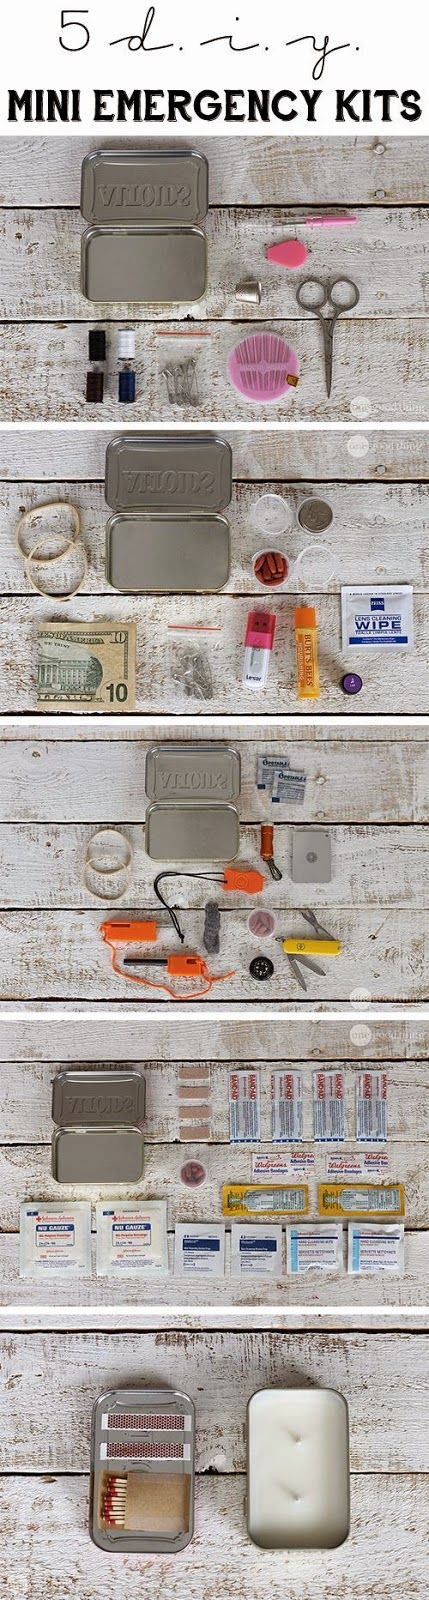 Craft Project Ideas: 5 DIY MINI EMERGENCY KITS